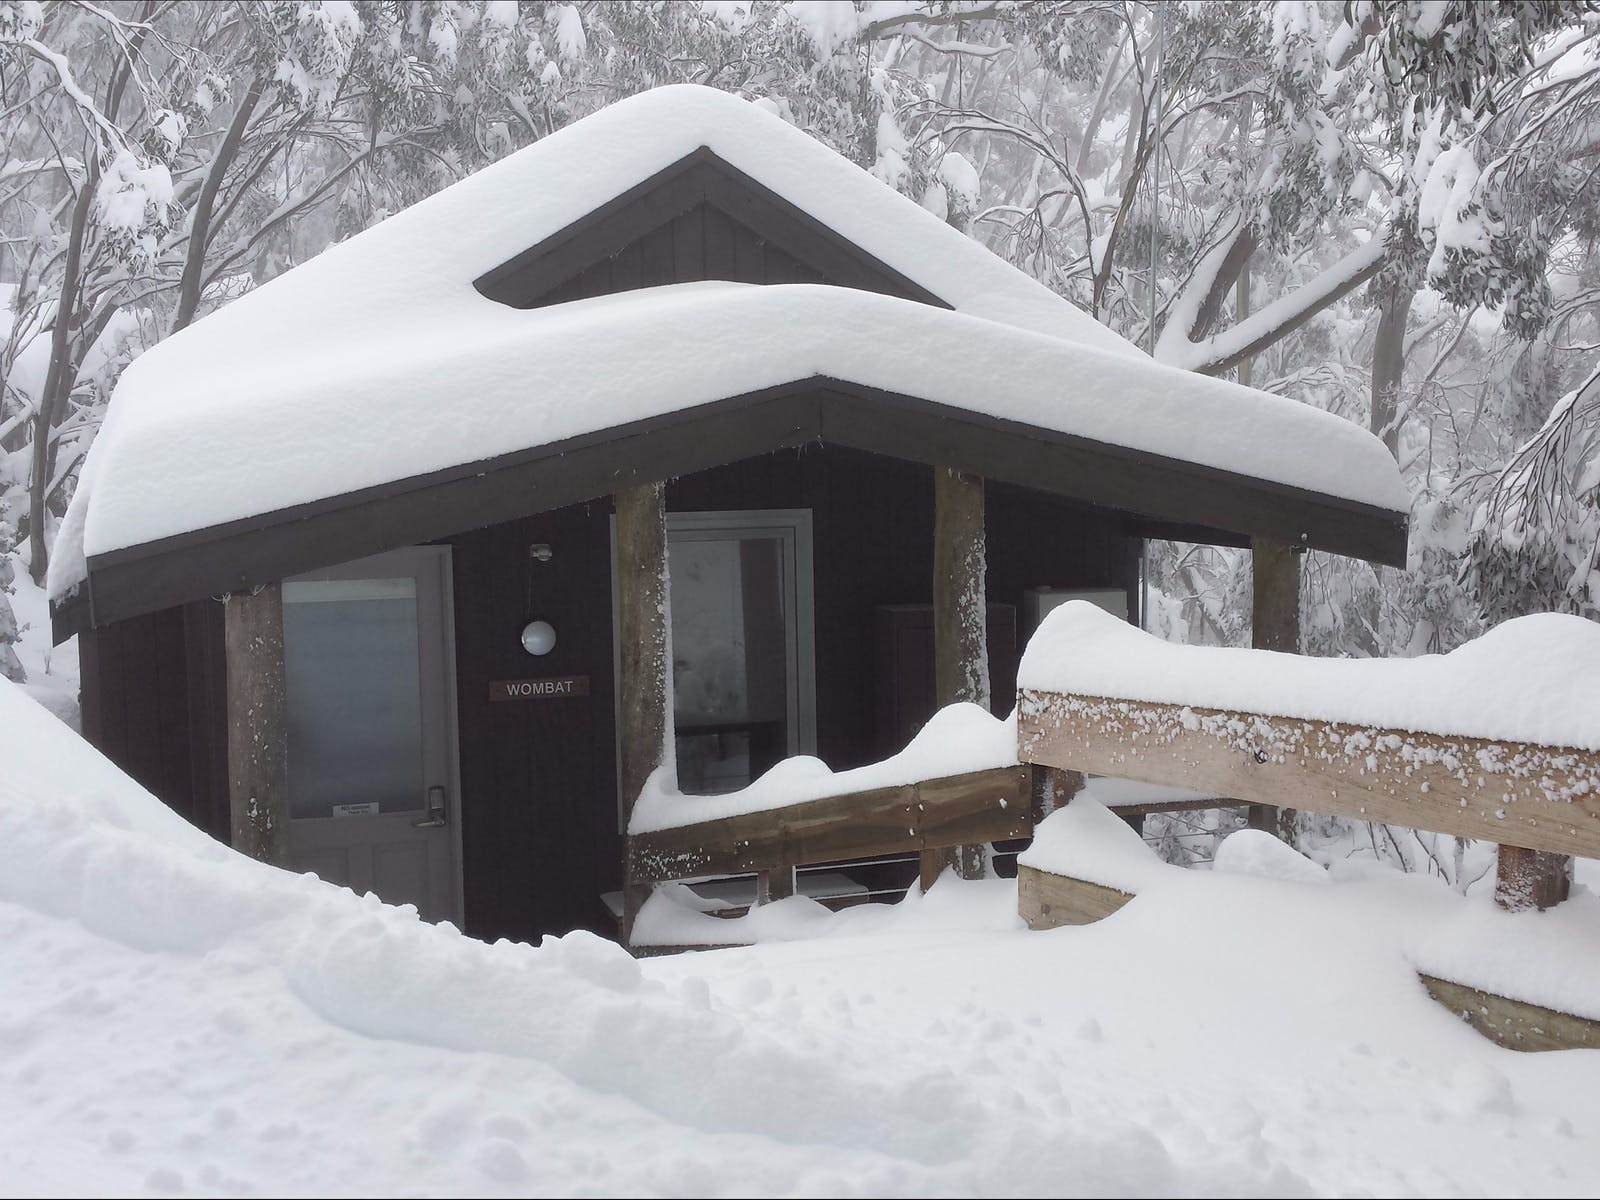 Wombat Cabin during winter